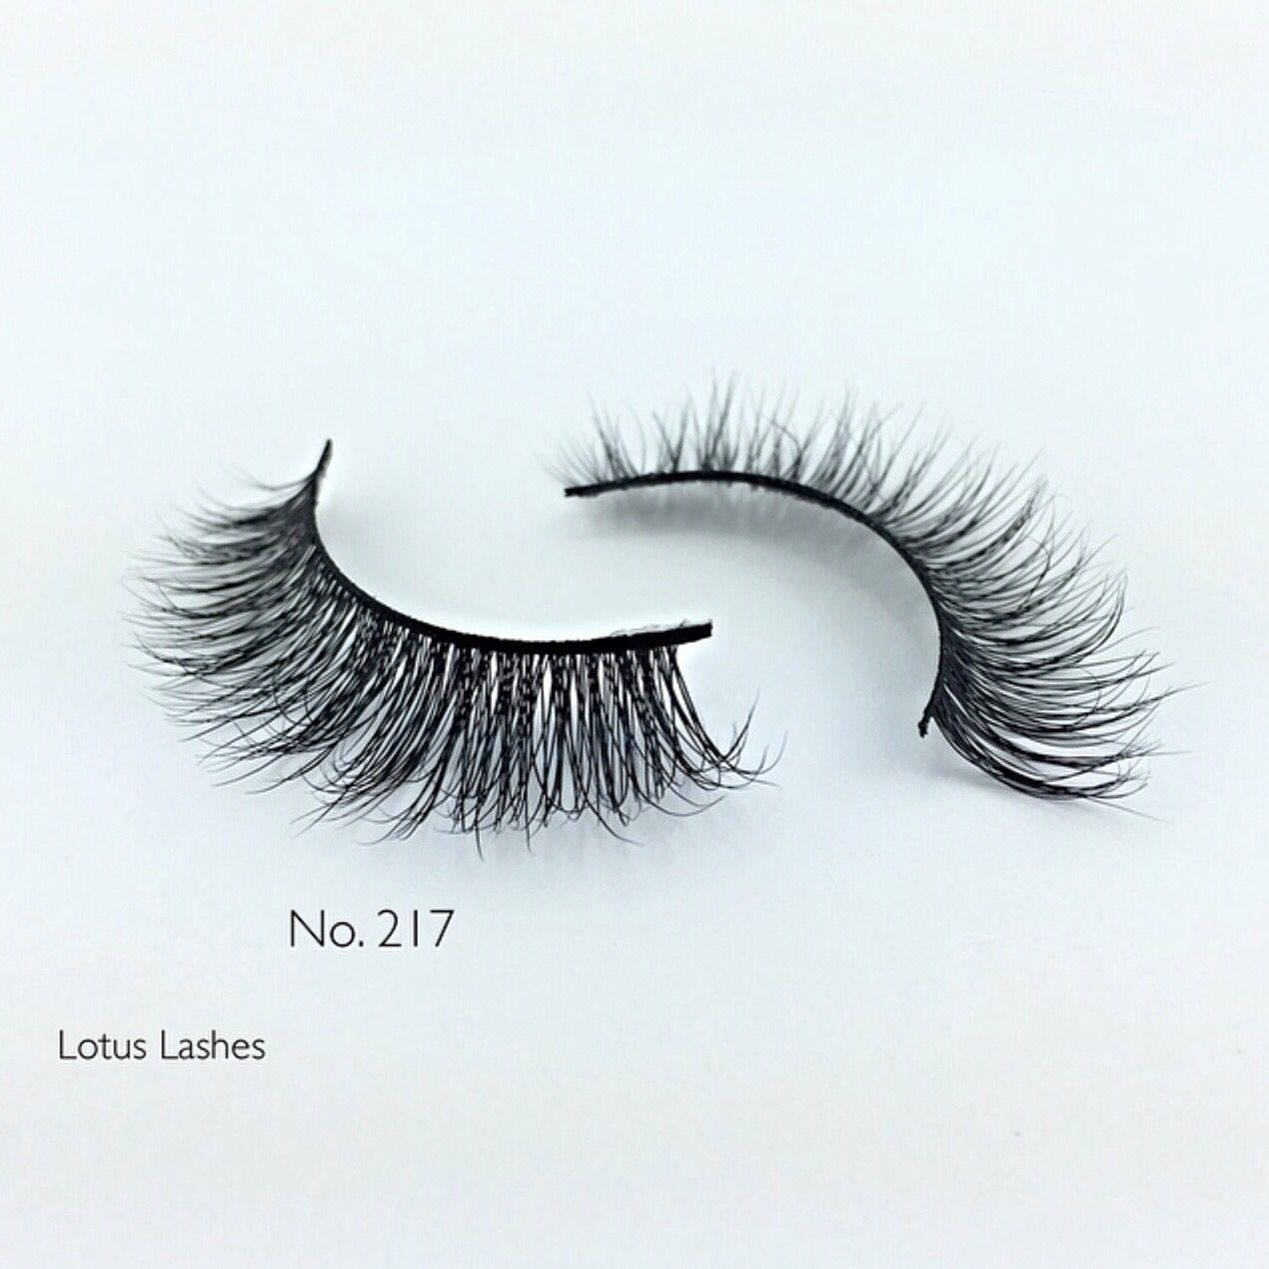 3b4ceb64bbe The perfect lash for a fun night out. Lotus Lashes No. 217 | LOTUS ...